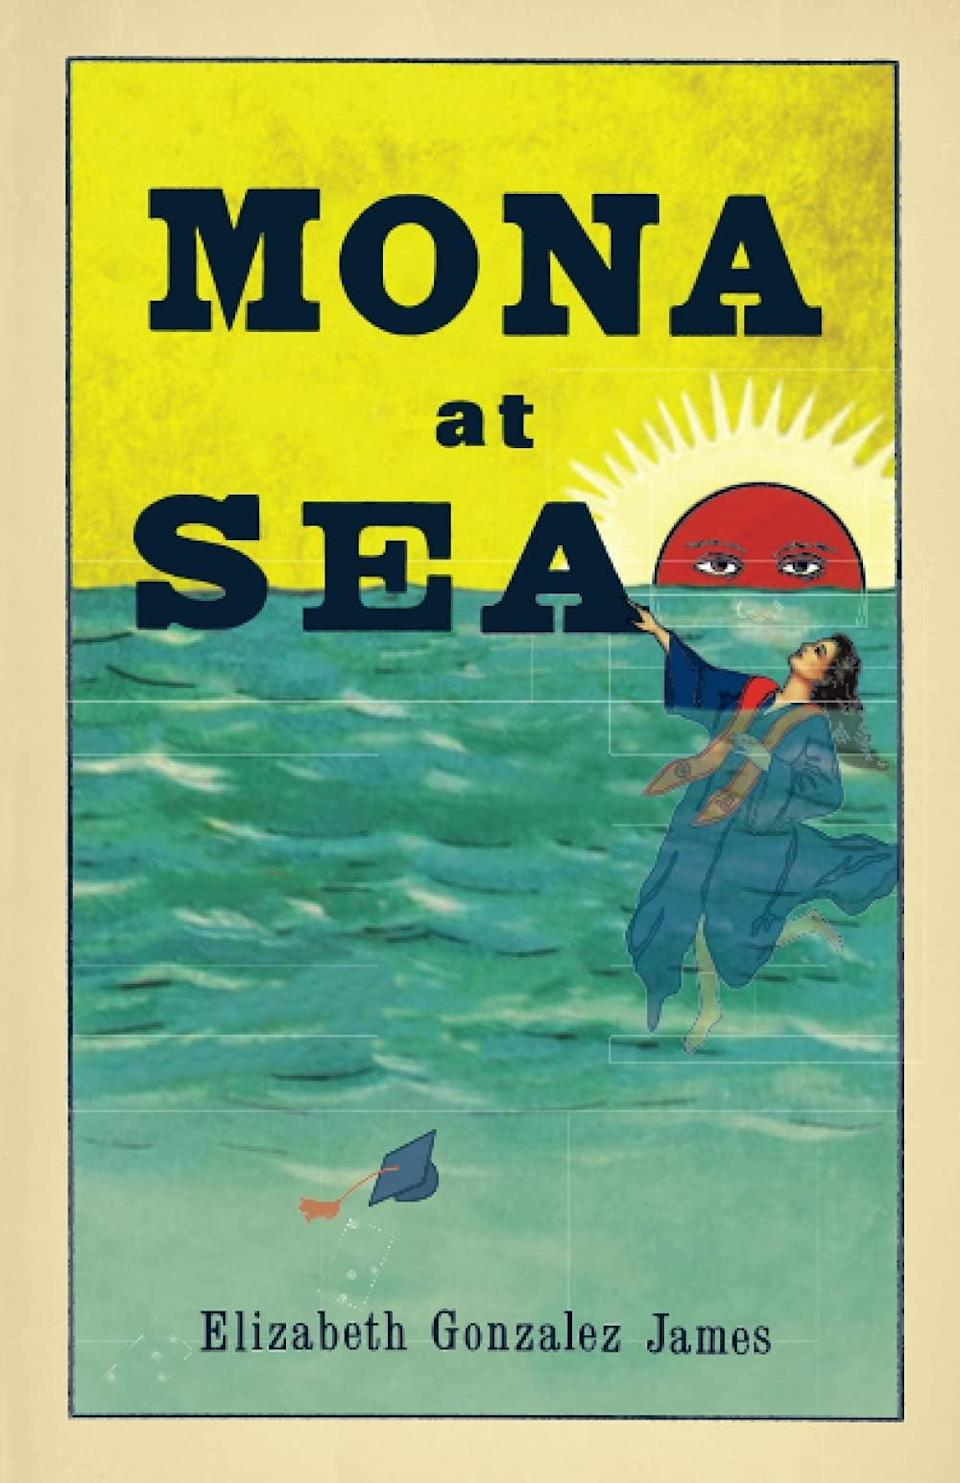 <p>Set during the Great Recession, <span><strong>Mona at Sea</strong></span> by Elizabeth Gonzalez James is a warts and all depiction of what it was like for millennials searching for work post-college during that difficult era. When Mona's first real job ends up disappearing due to the recession, she heads home with no clue what she's supposed to do next. Luckily, her mom has a few ideas, including joining a job-seekers support group which throws Mona a lifeline when she needs it the most. </p> <p><em>Out June 30</em></p>